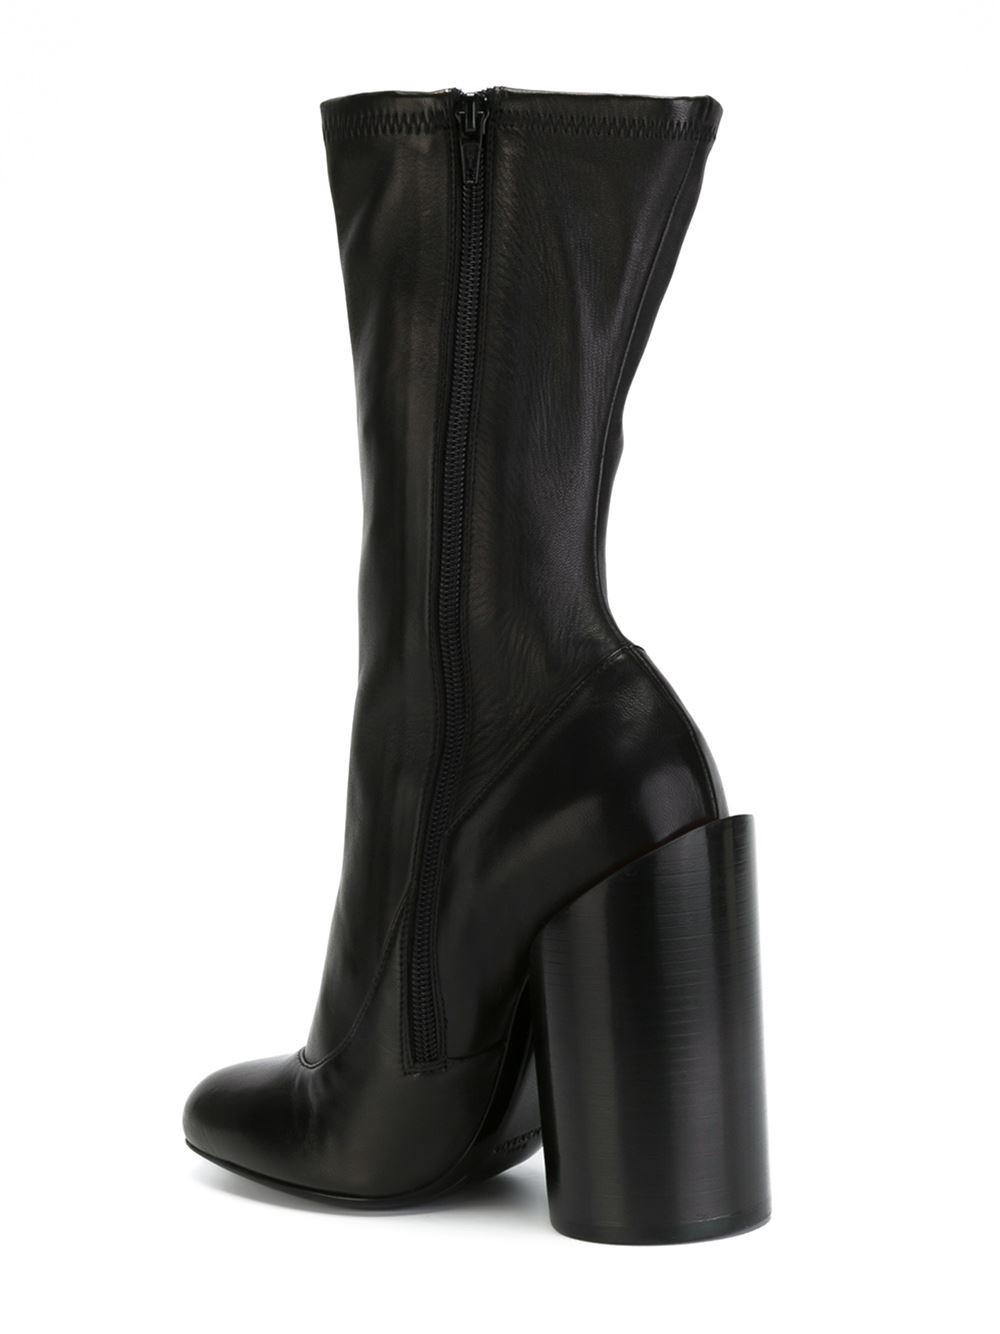 Givenchy Leather Sculpted Heel Boot in Black